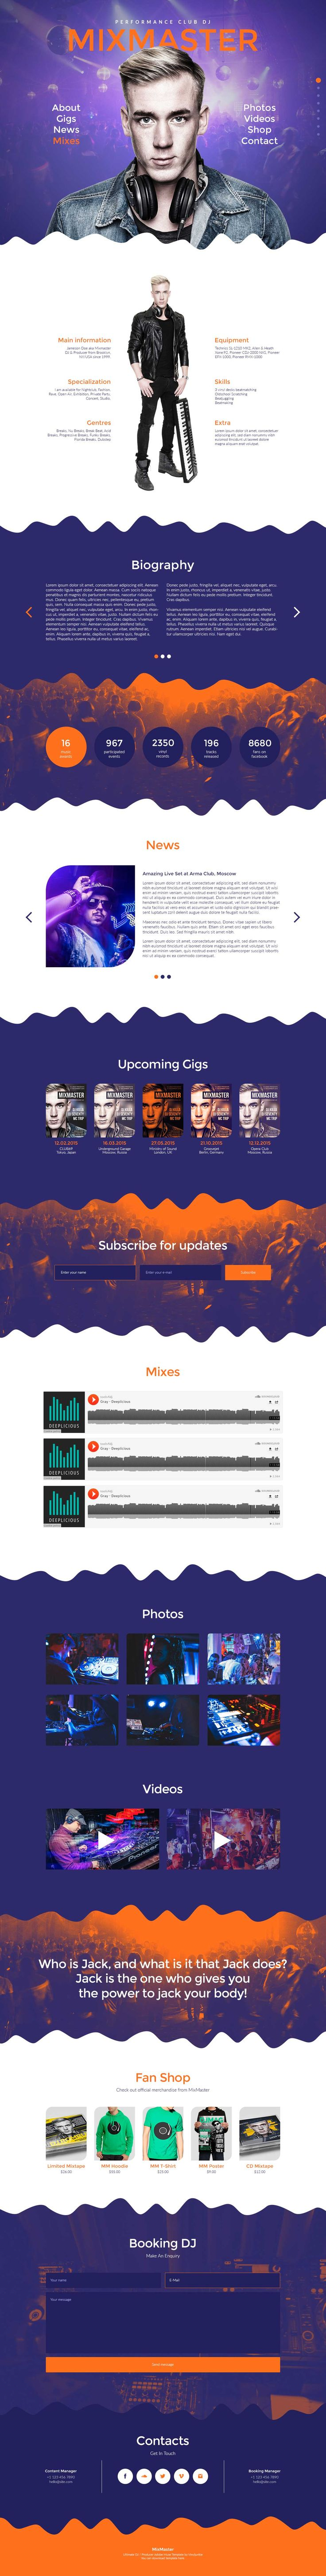 'MixMaster' is a great looking One Page Muse template suited for DJs or any individual artist. The template features a right dot navigation to browse the well presented (parallax scrolling) sections in the long page. Noteworthy features include Gumroad integration (for selling your digital products), biography slider, stats infographic, newsletter subscribe, Soundcloud embedding and a booking form.